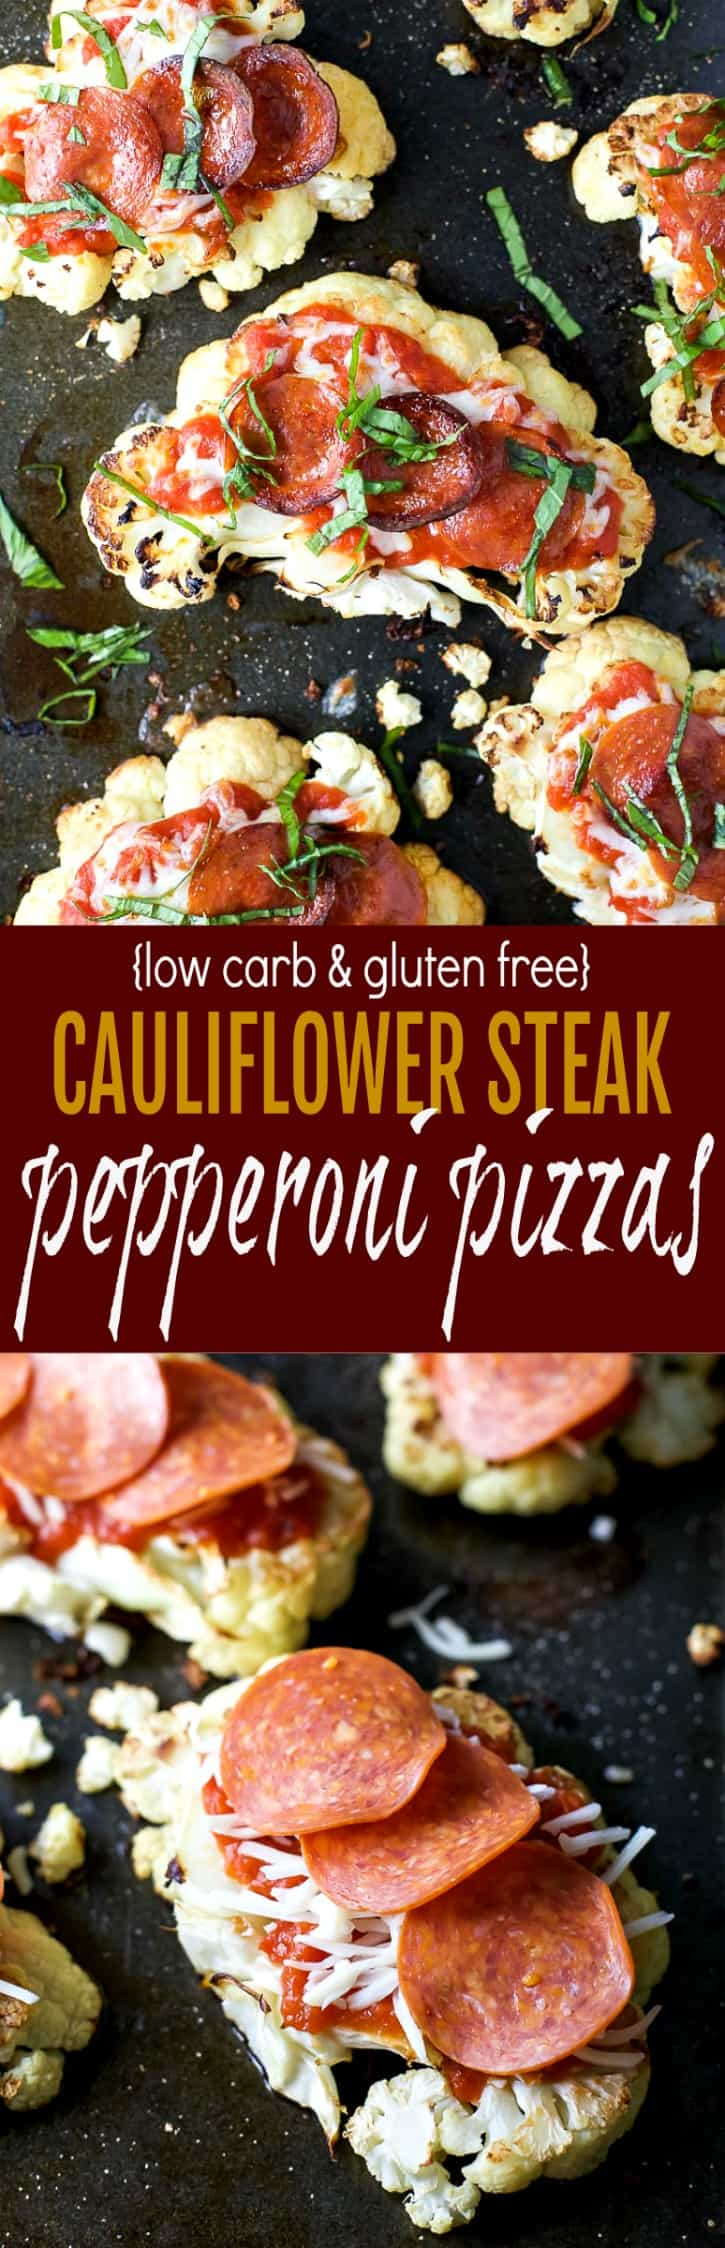 Low Carb & Gluten Free Cauliflower Steak Pepperoni Pizzas on a baking sheet